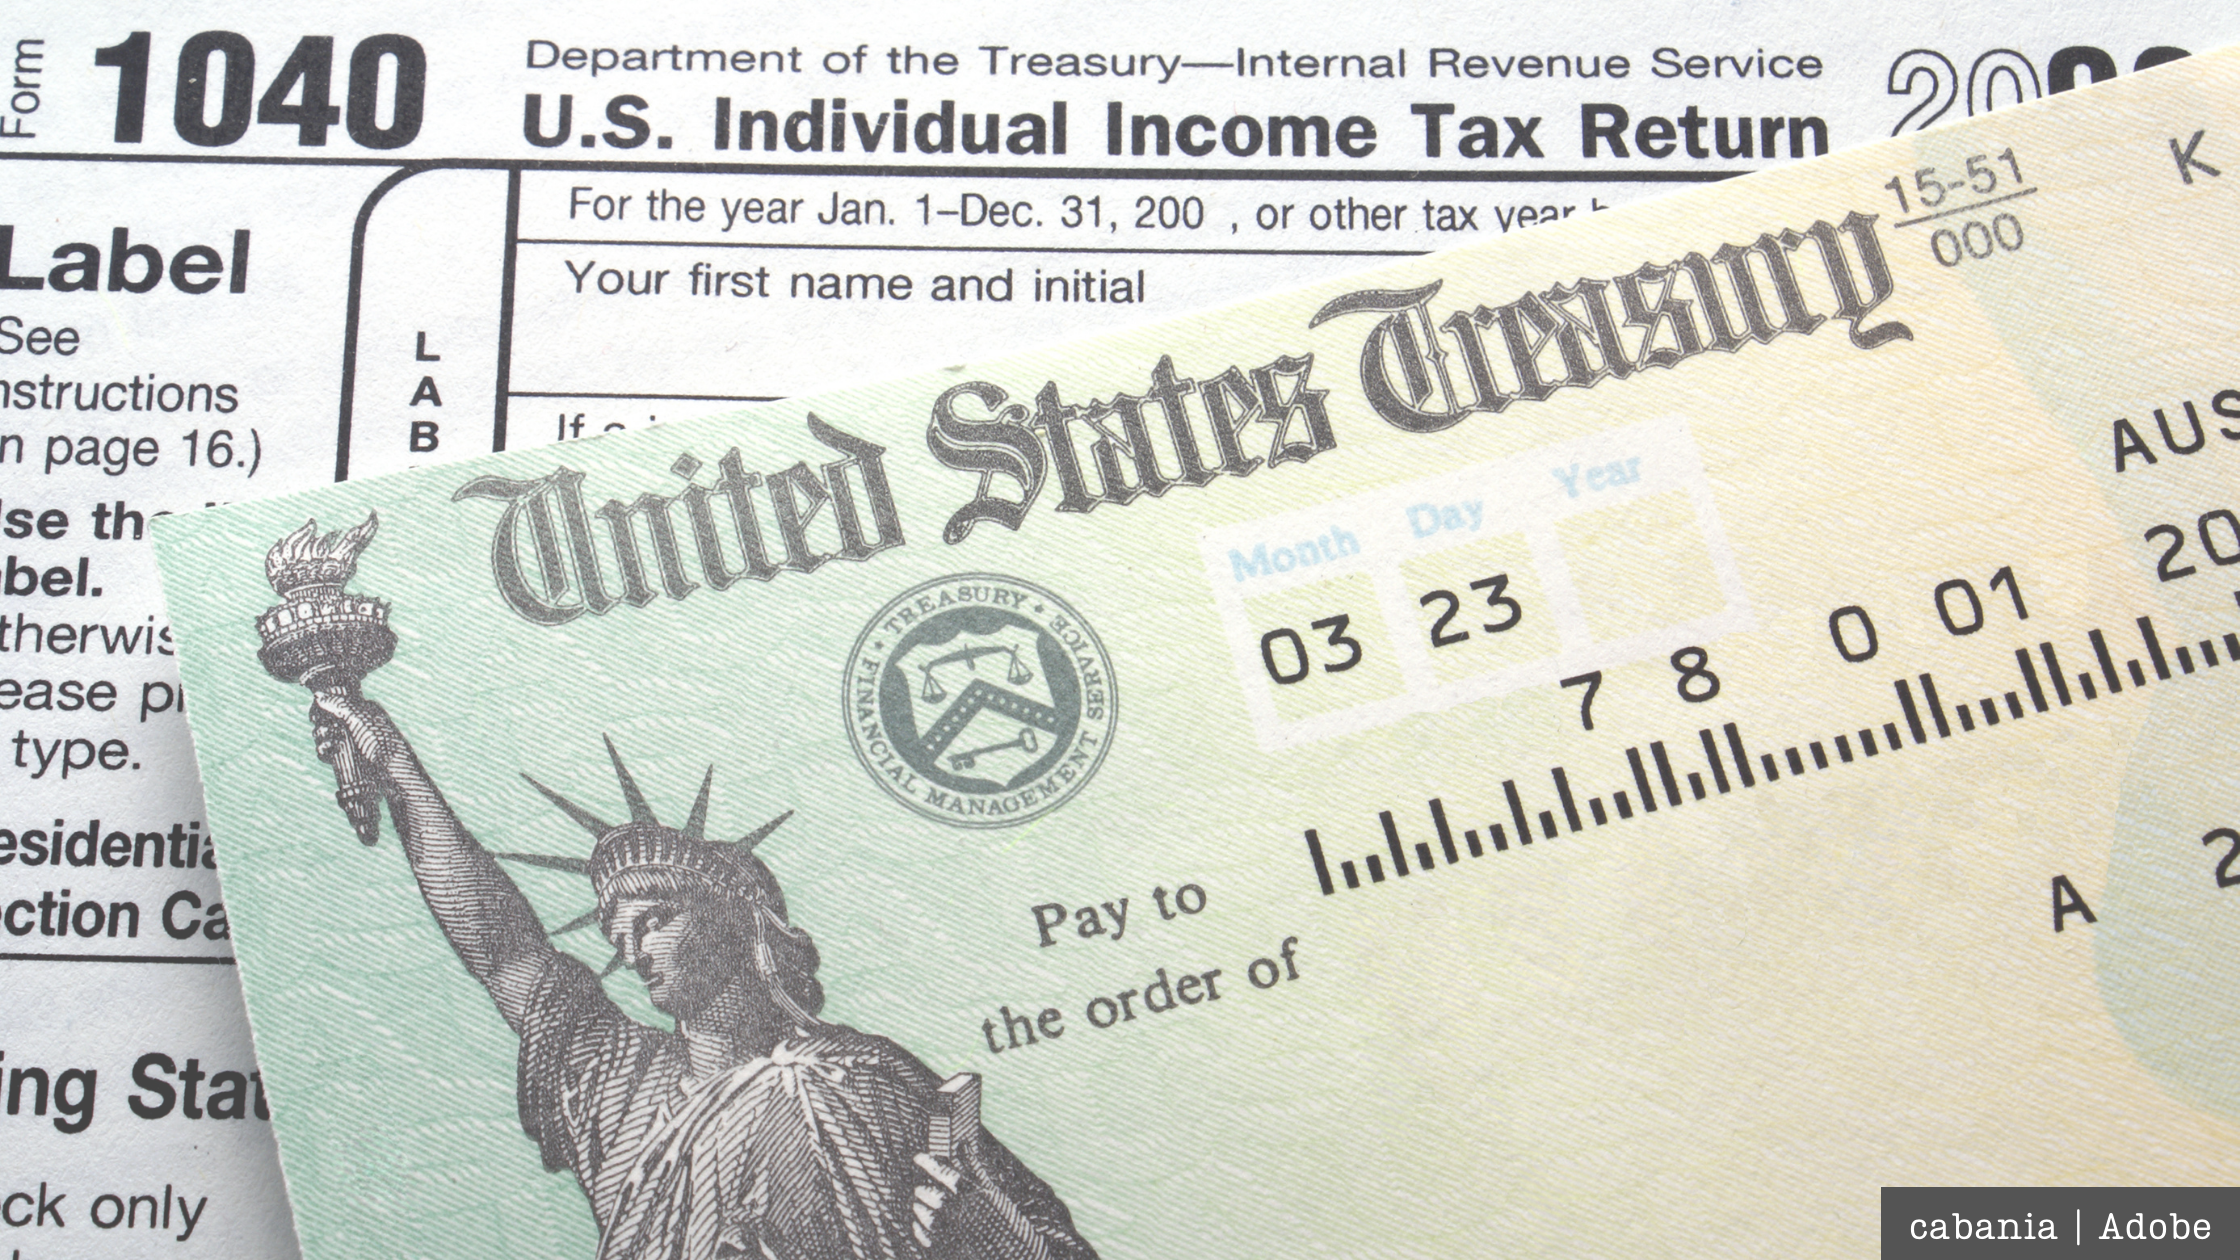 Just Another Distraction? The Times Releases President Trump's Tax Returns